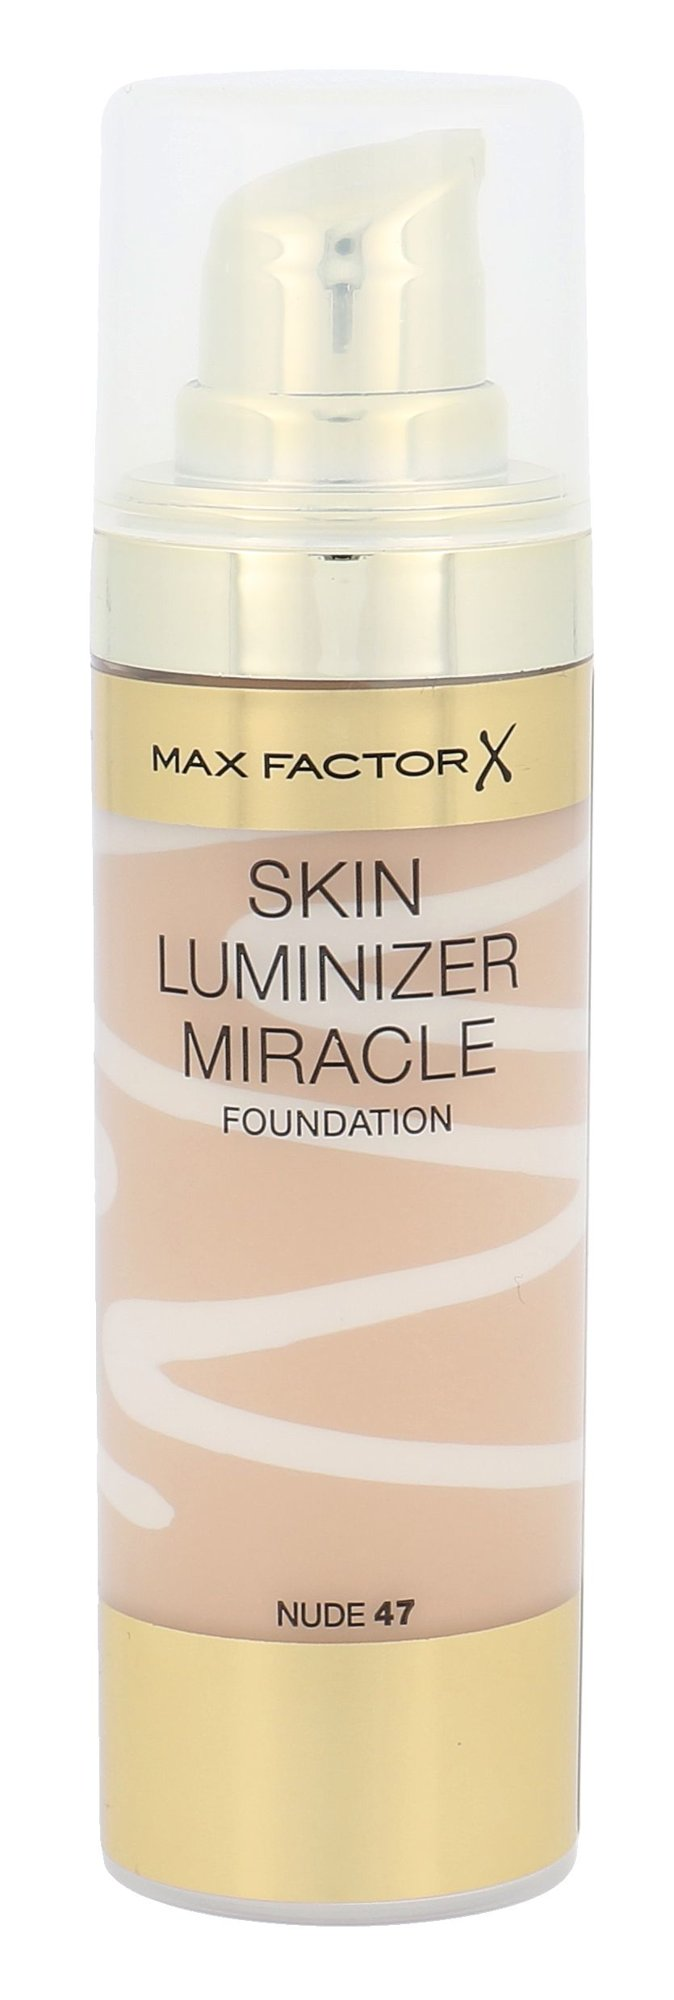 Max Factor Skin Luminizer Cosmetic 30ml 47 Nude